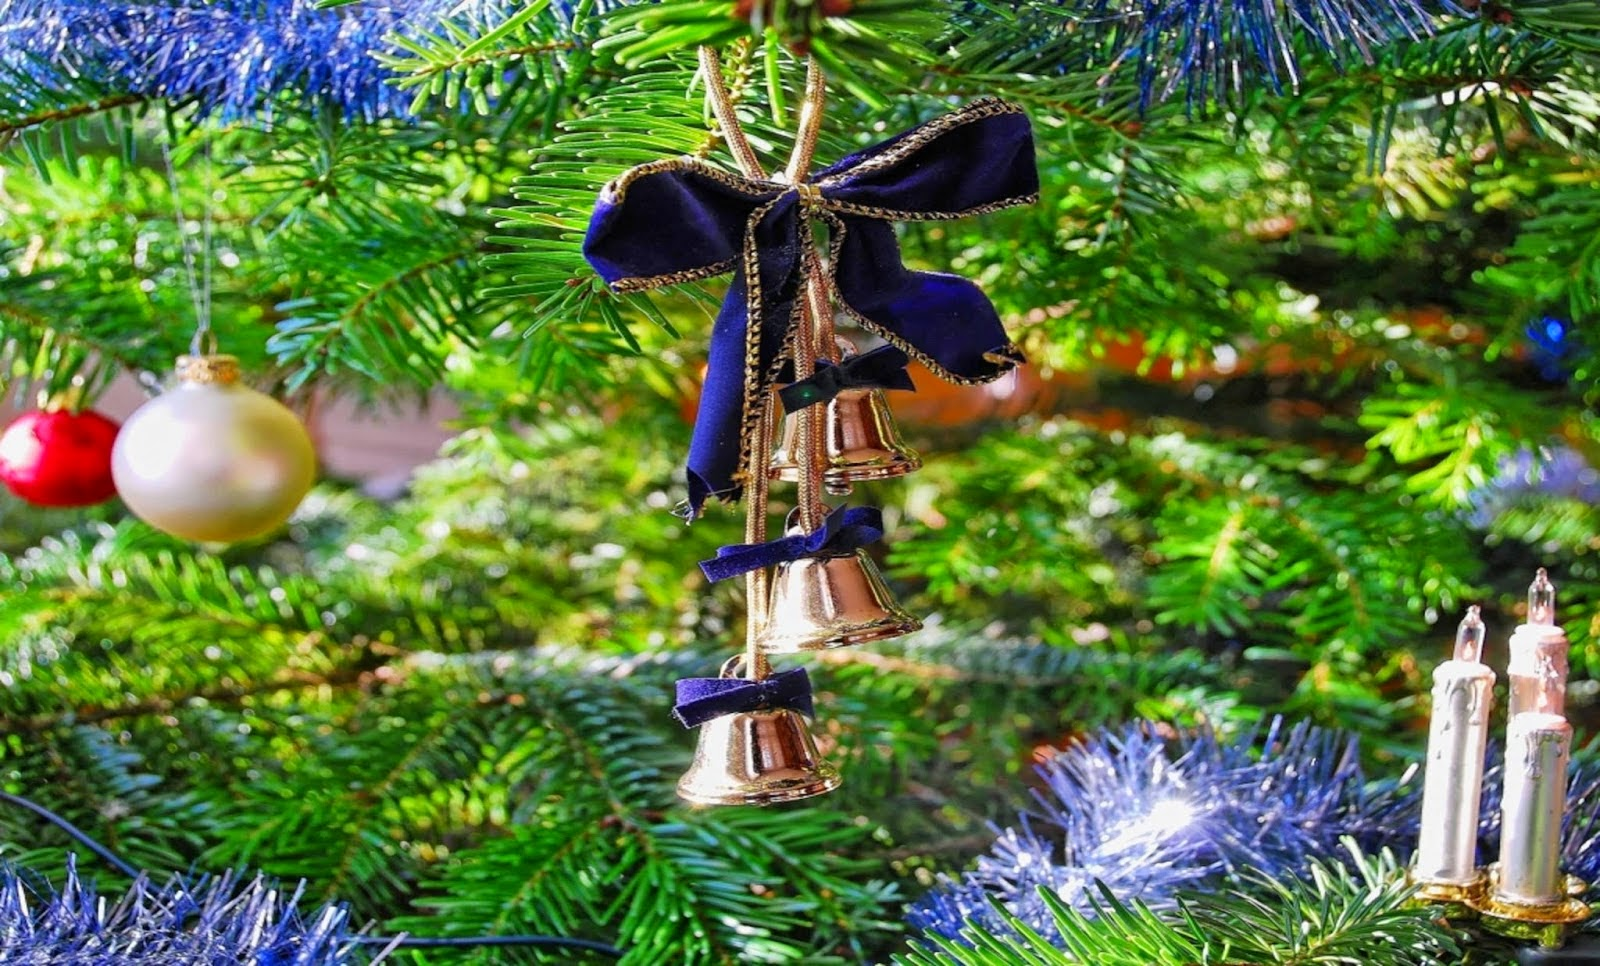 Christmas-bell-decorated-in-xmas-tree-new-unique-amazing-design-images-photos.jpg